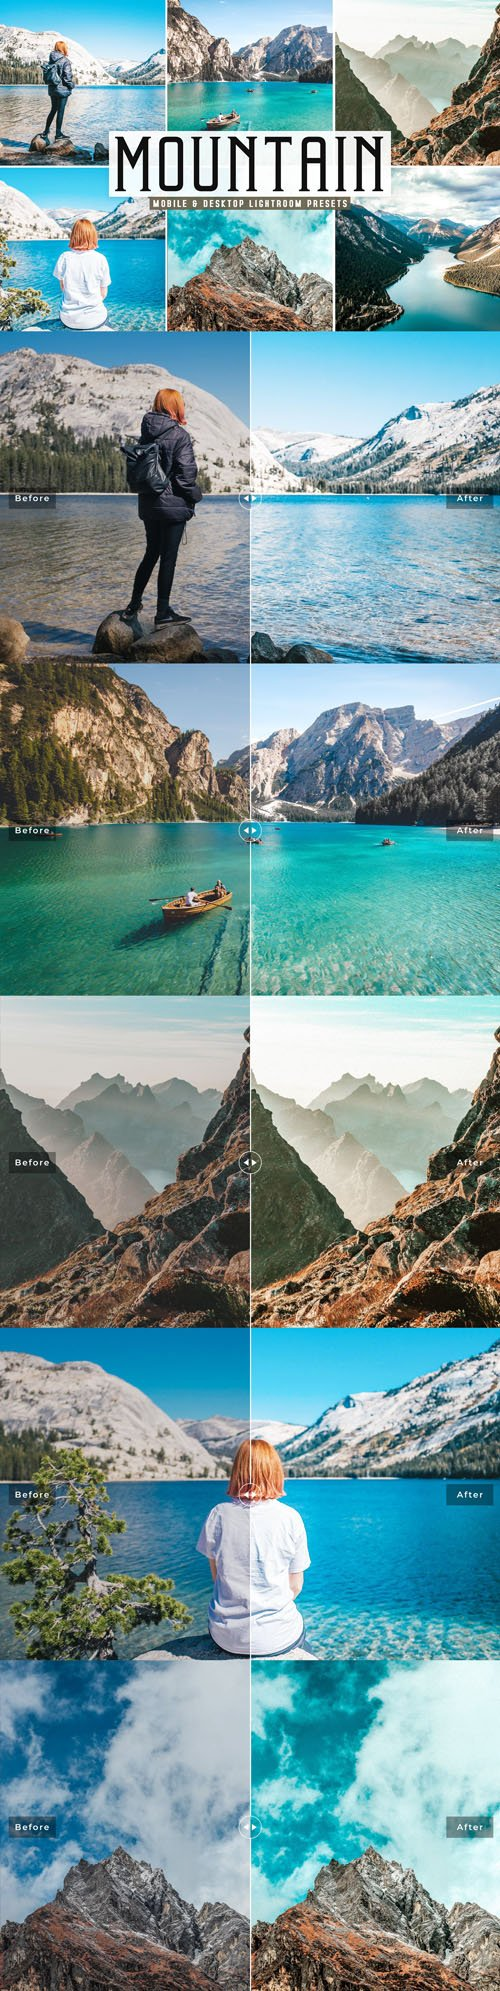 Mountain Pro Lightroom Presets + Photoshop Actions [Mobile & Desktop]